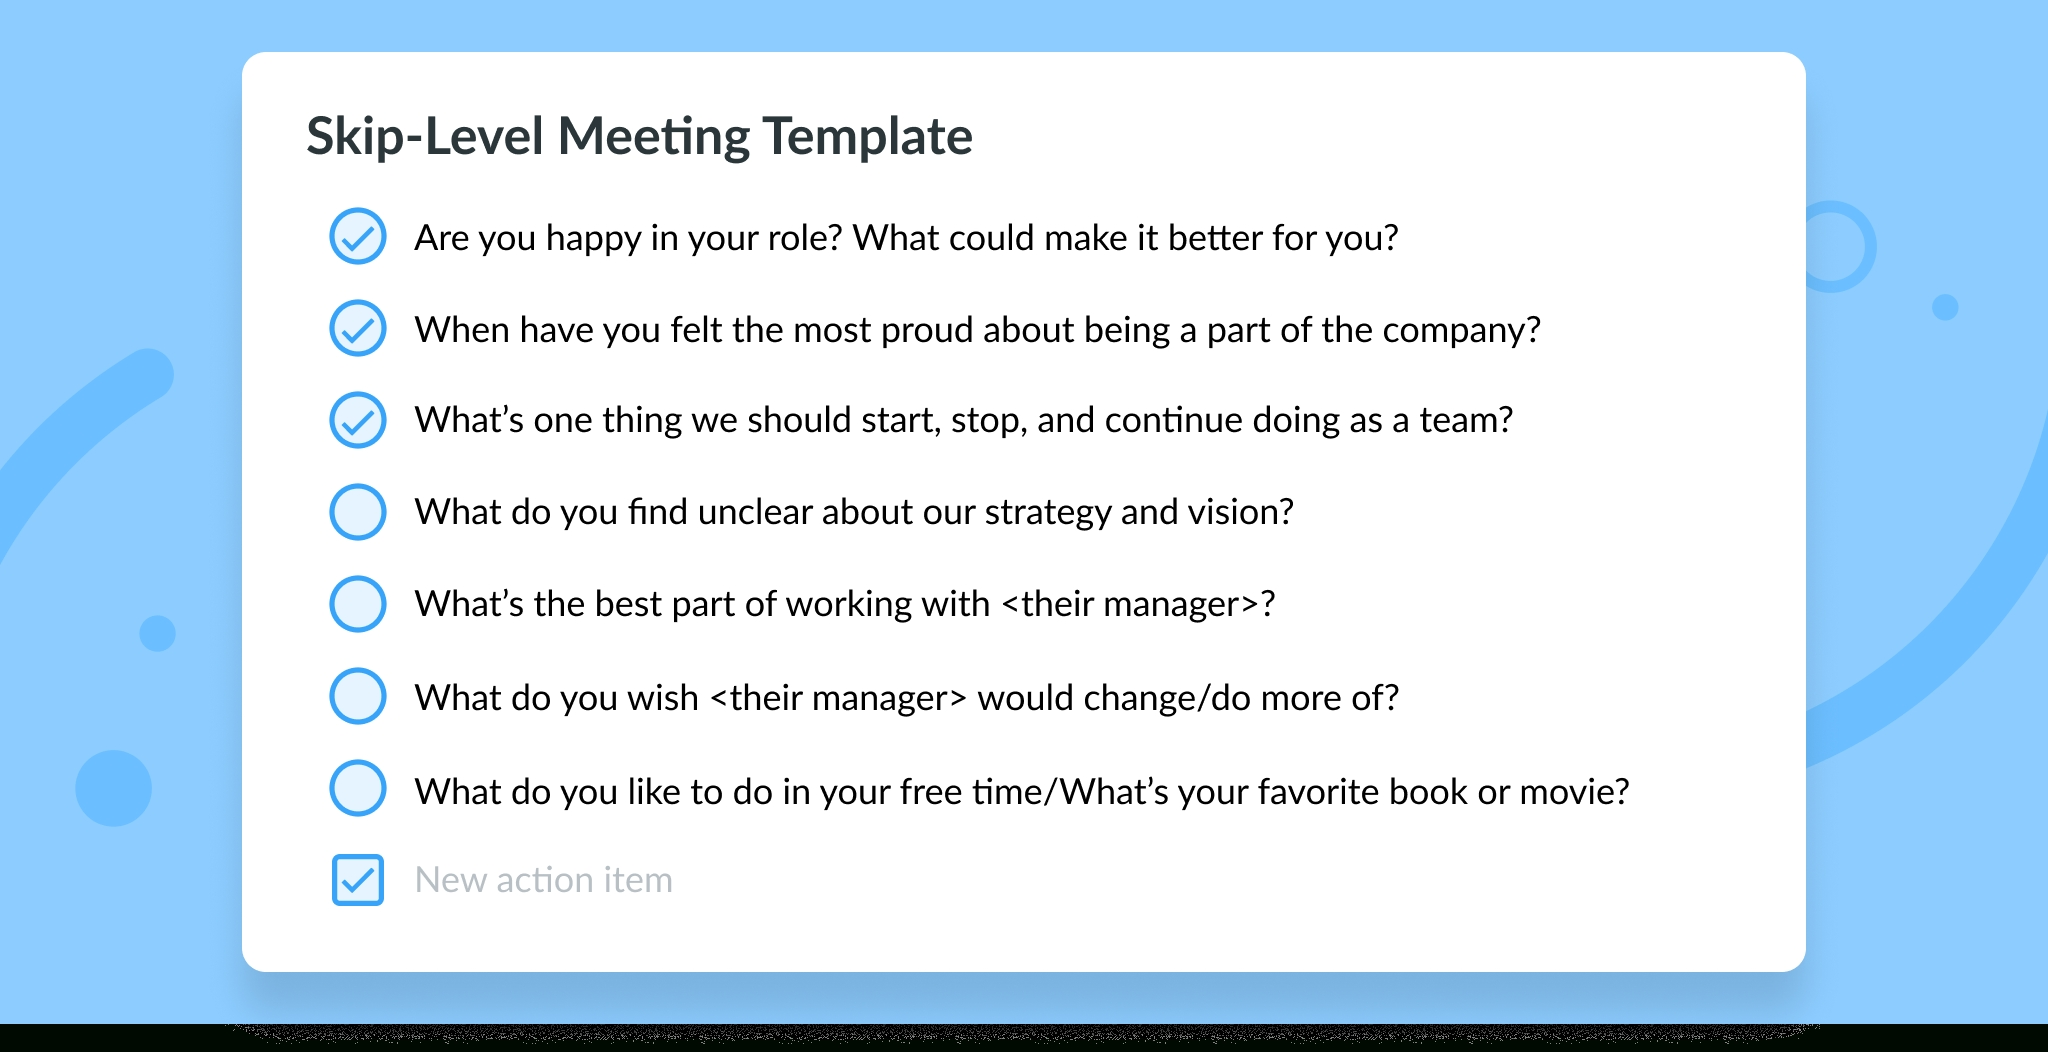 Skip-Level Meetings: Top 7 Questions & Best Practices [Free